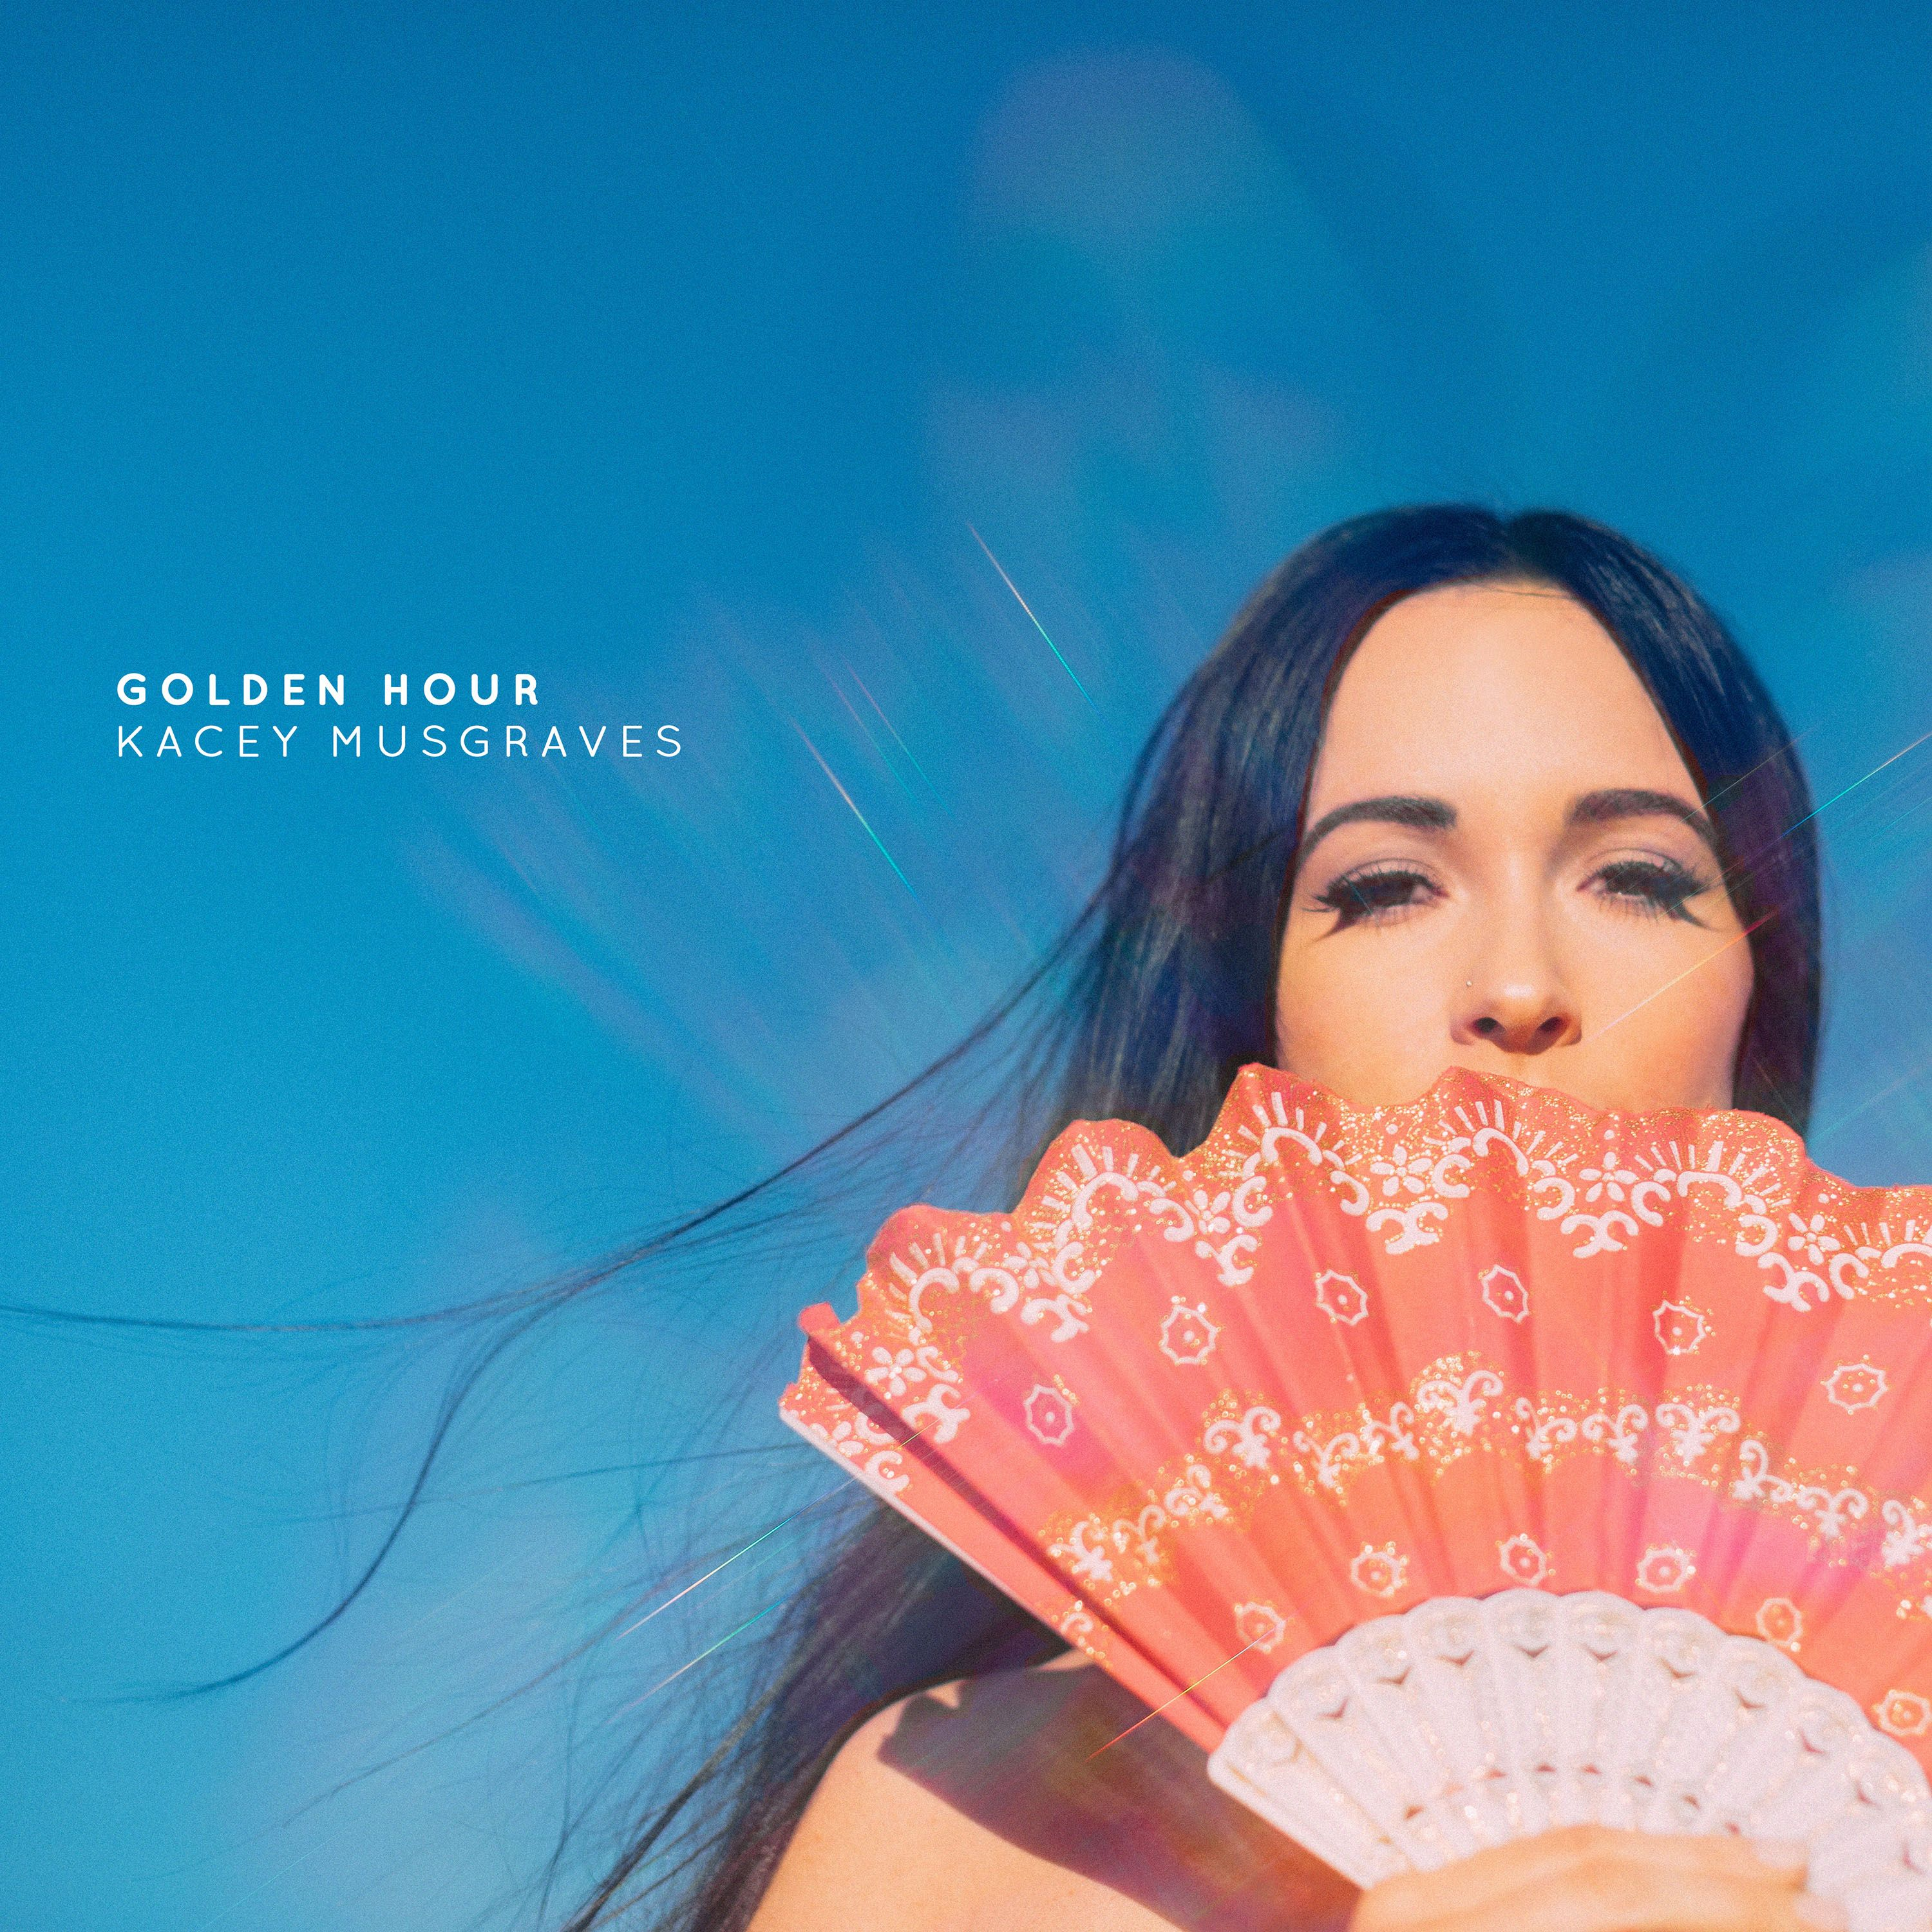 Kacey Musgraves - Golden Hour album cover